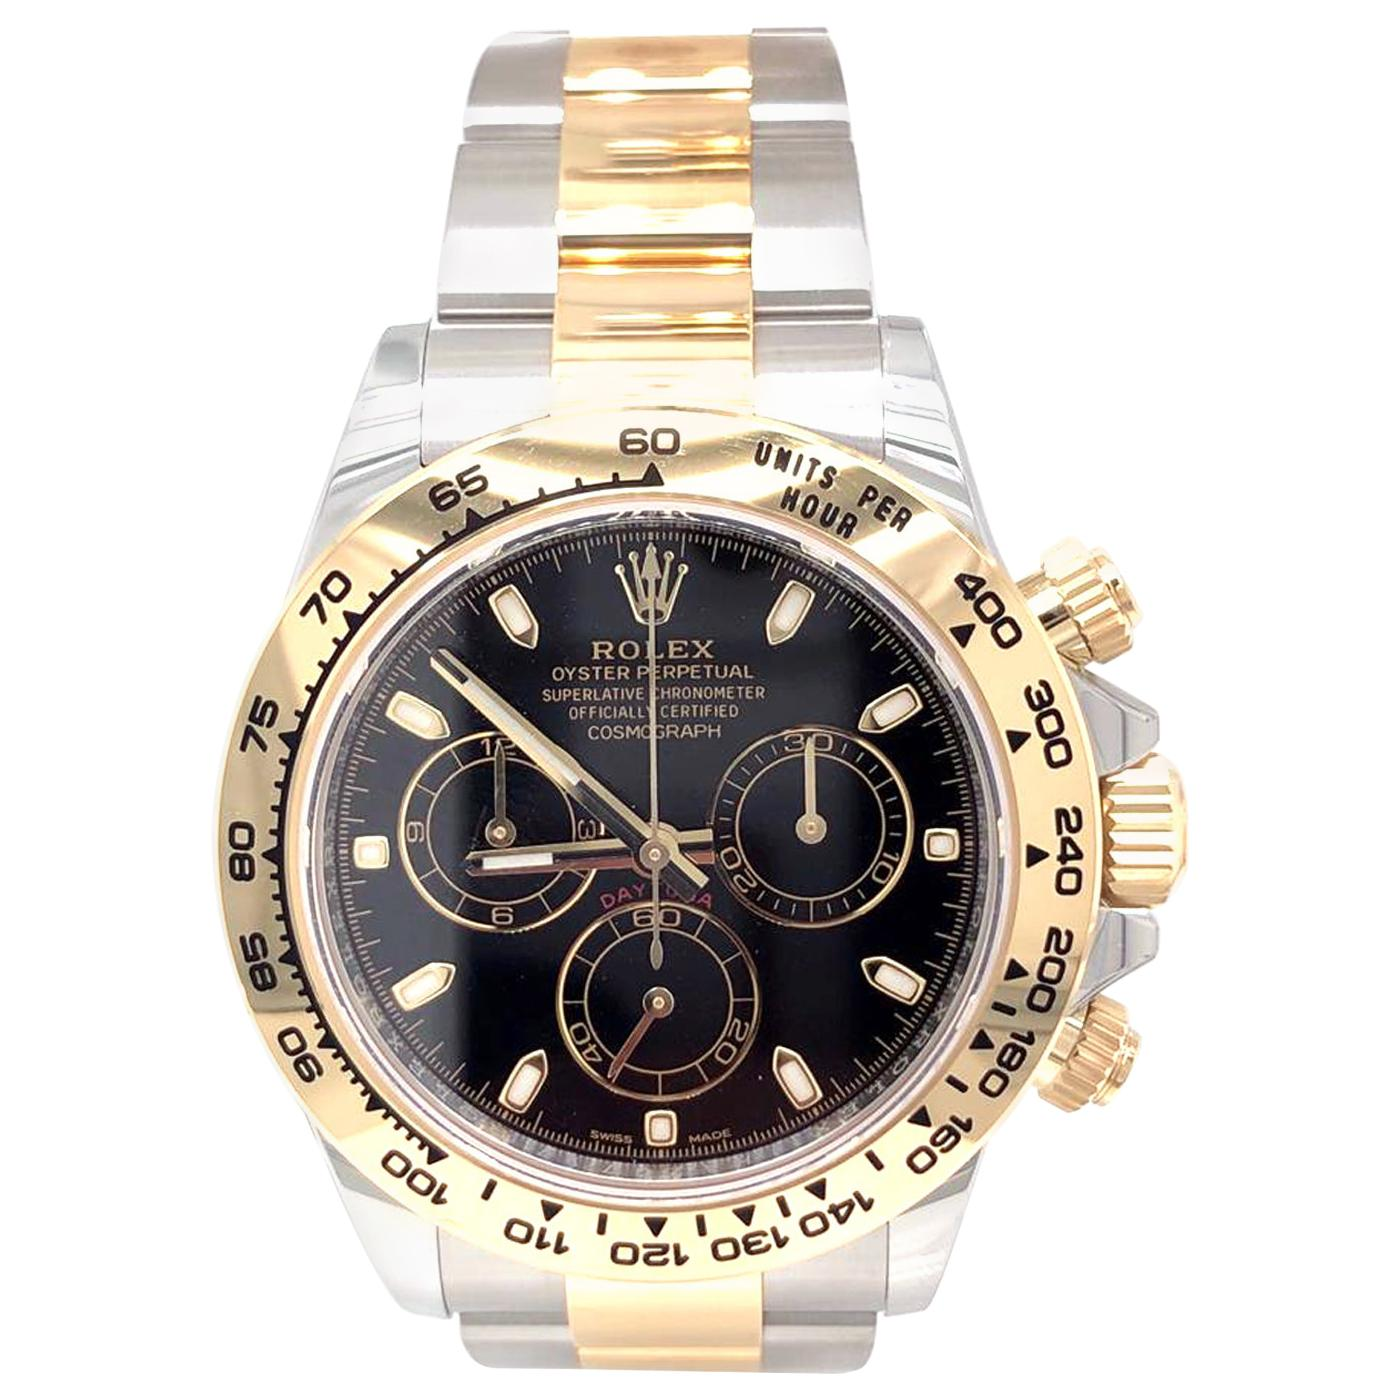 Rolex Daytona 116503 Two Tone Steel and Yellow Gold Black Index Dial Watch